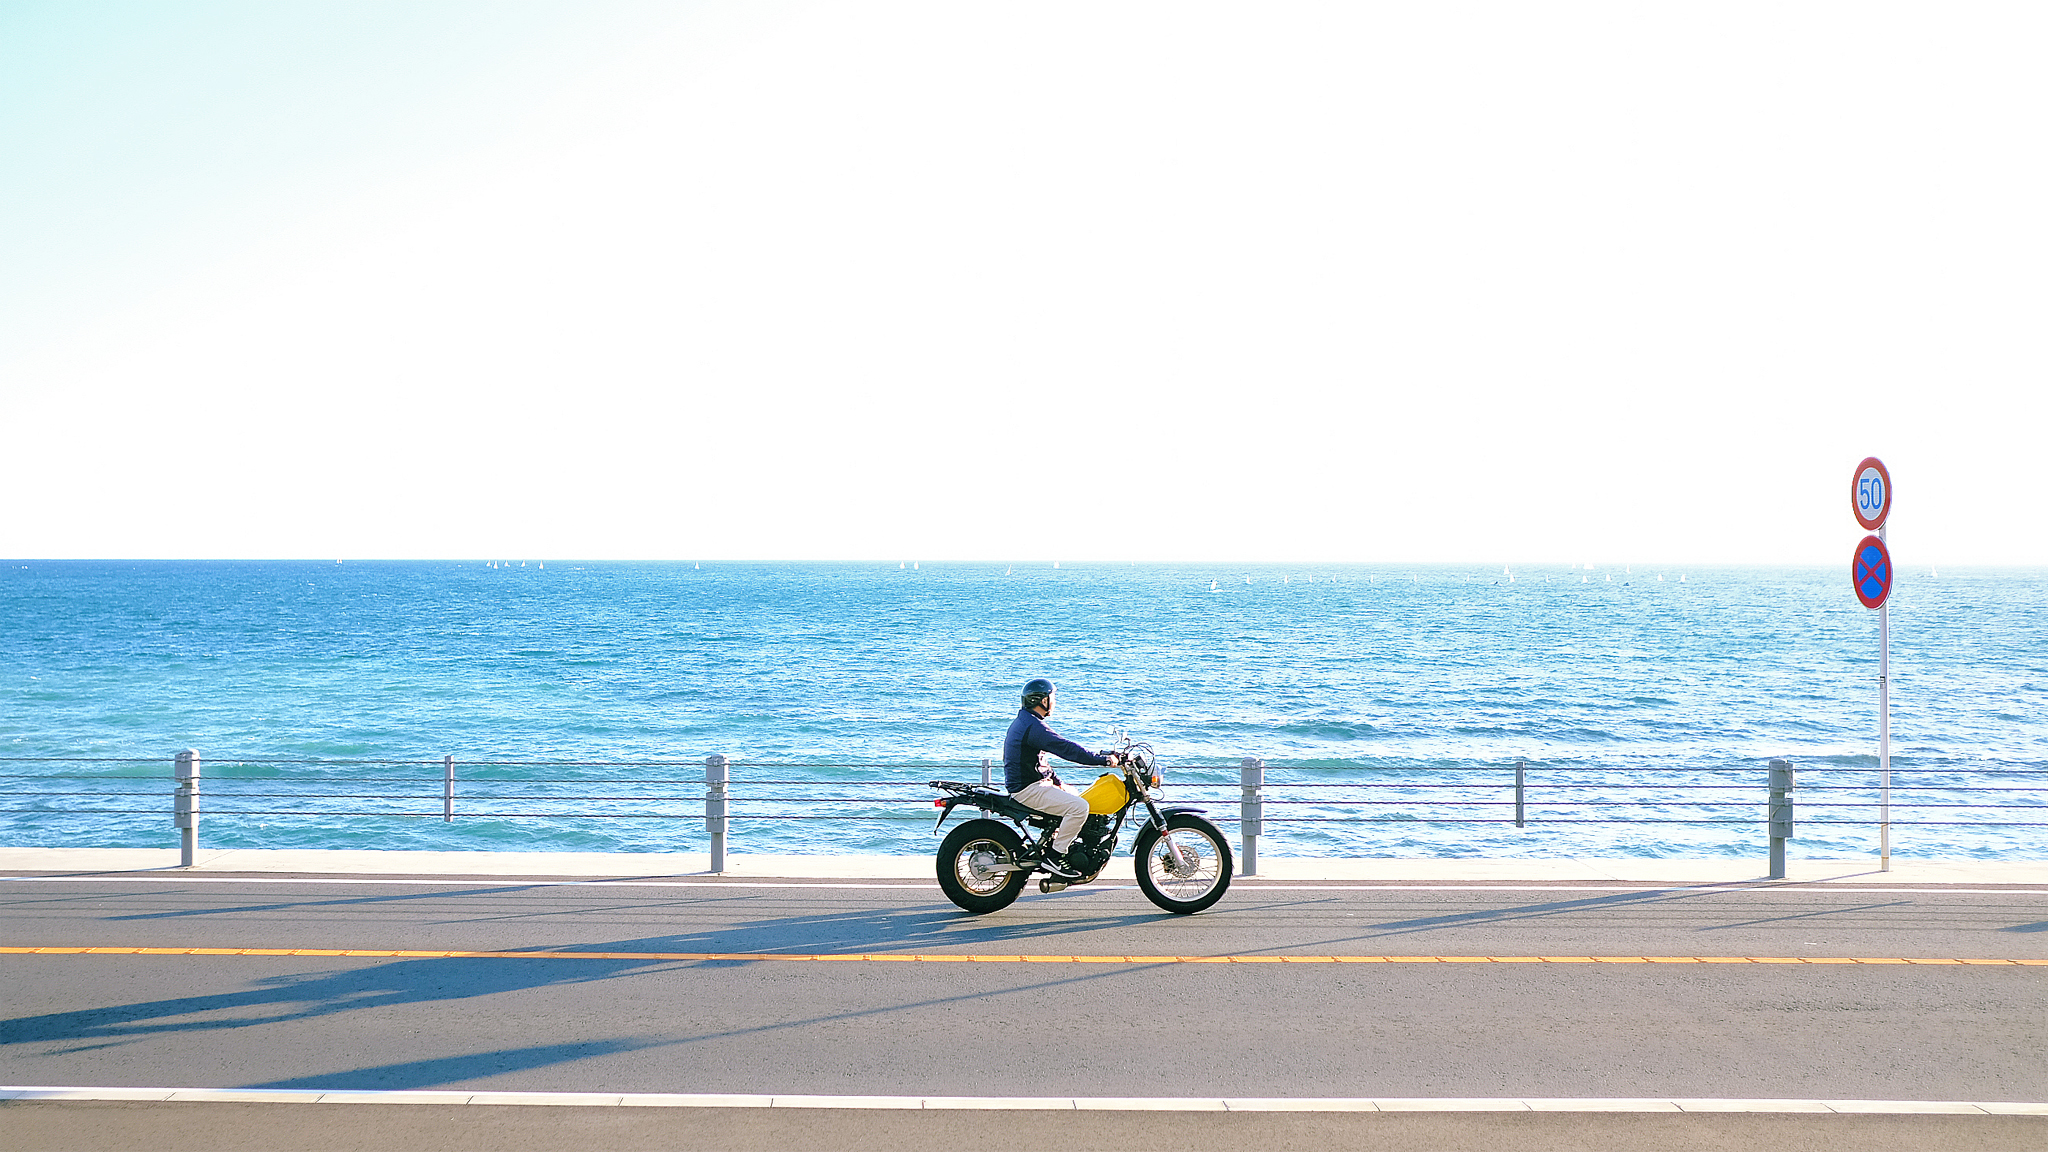 Man riding yellow motorcycle on a road along the beach with blue ocean water and horizon in the background.